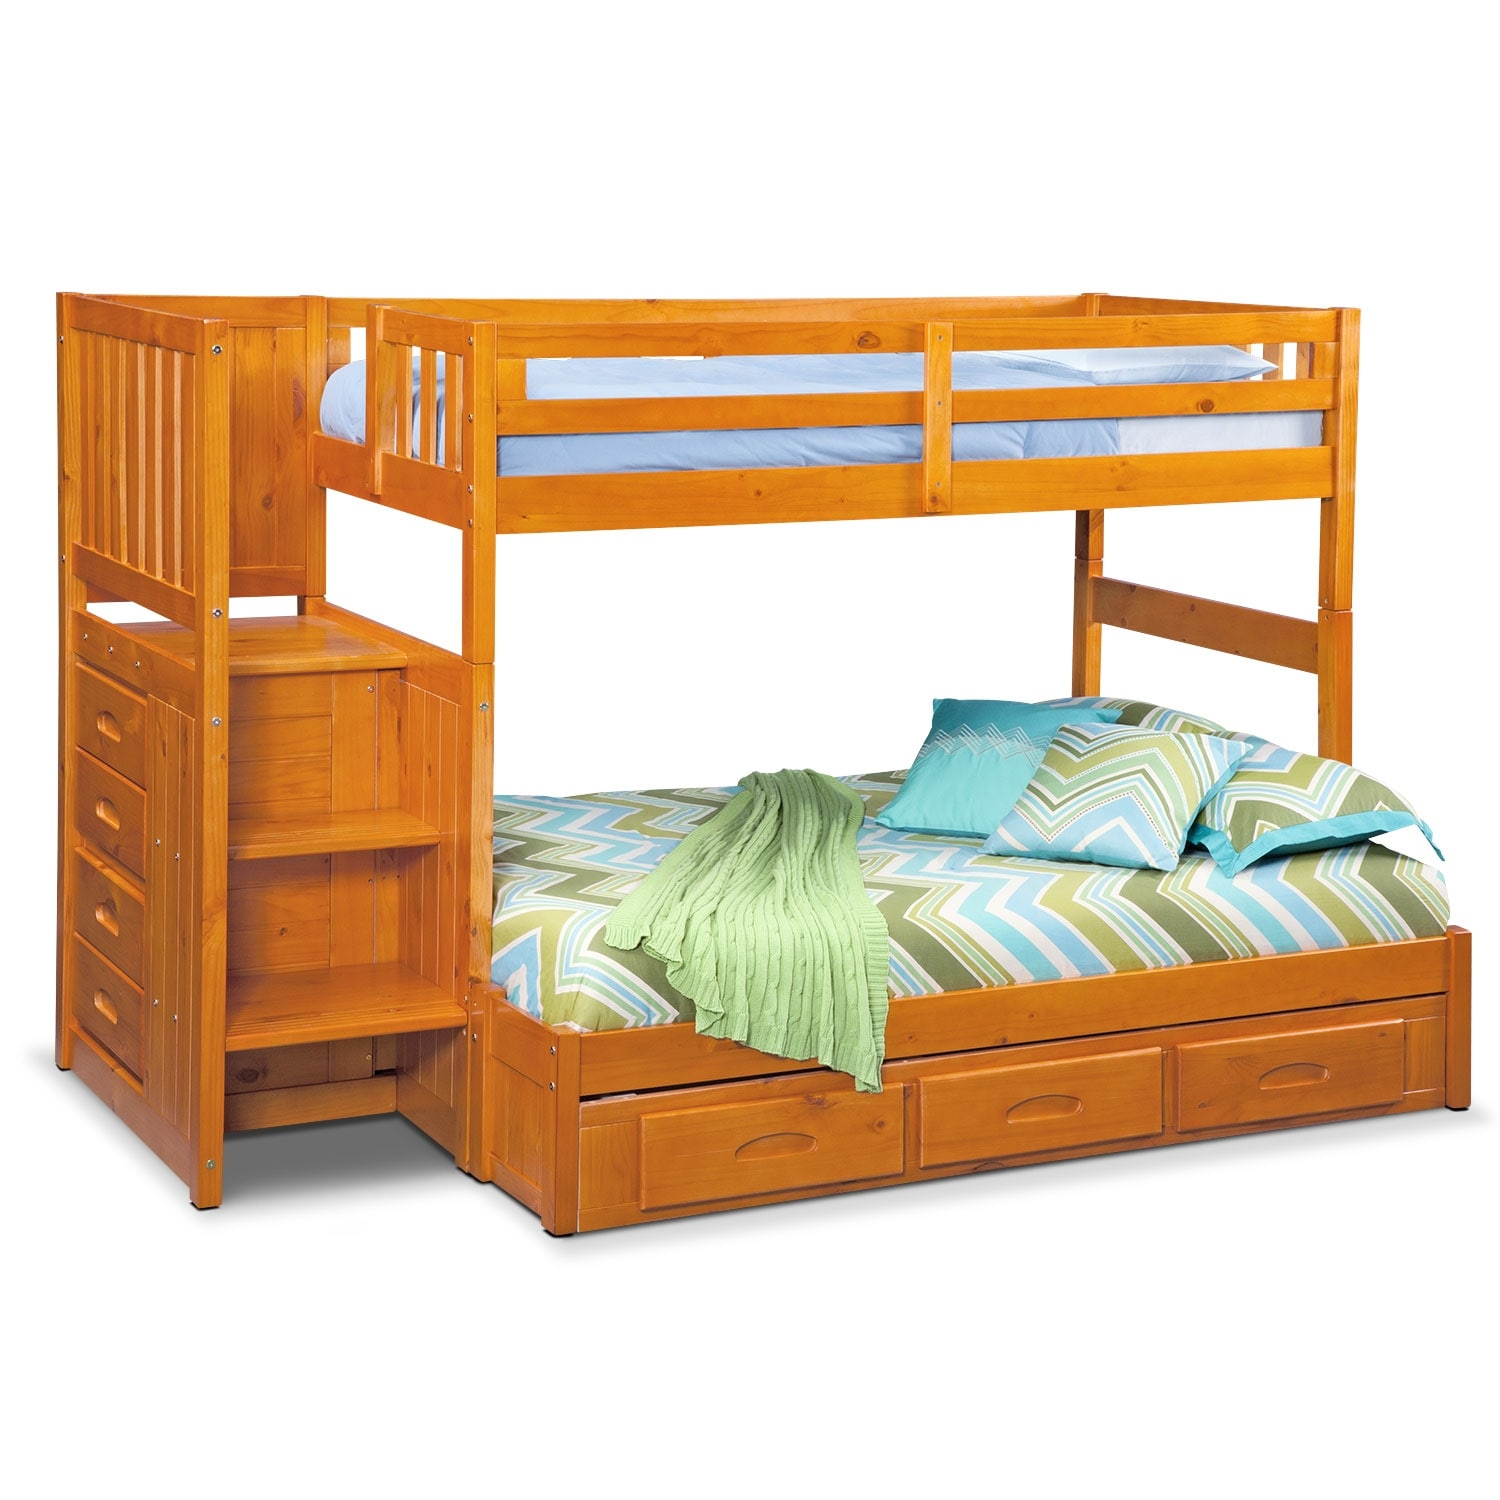 Ranger Pine Twin/Full Bunk Bed w/ Stairs and 7-Drawer Storage